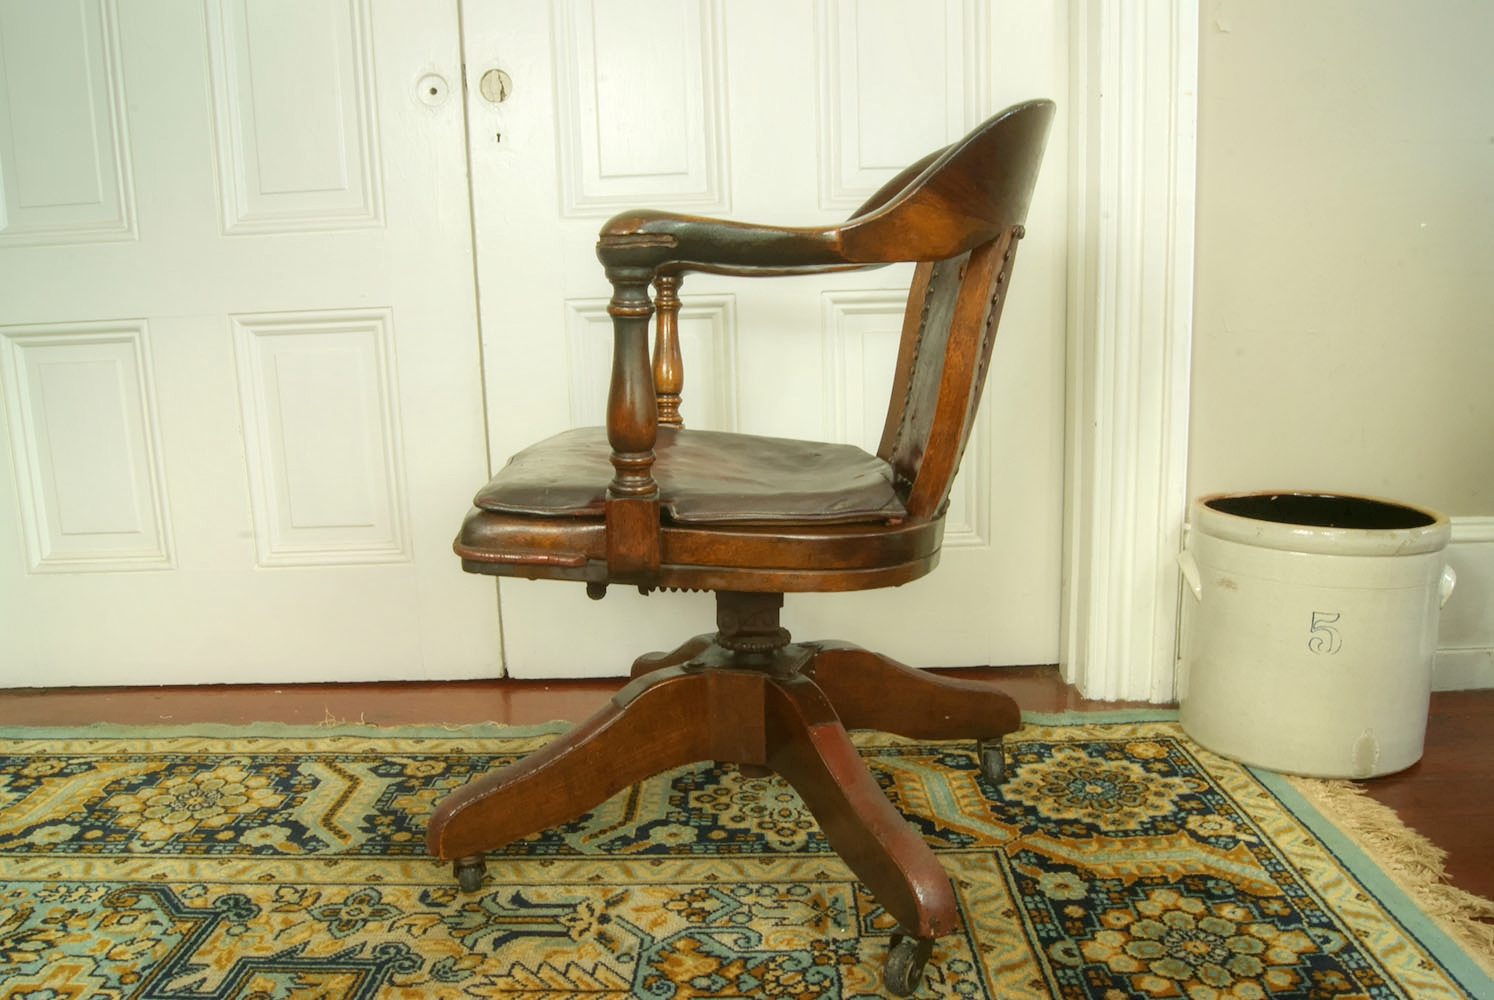 Awesome Antique Bankers Chair, Original Leather Seat Cushion